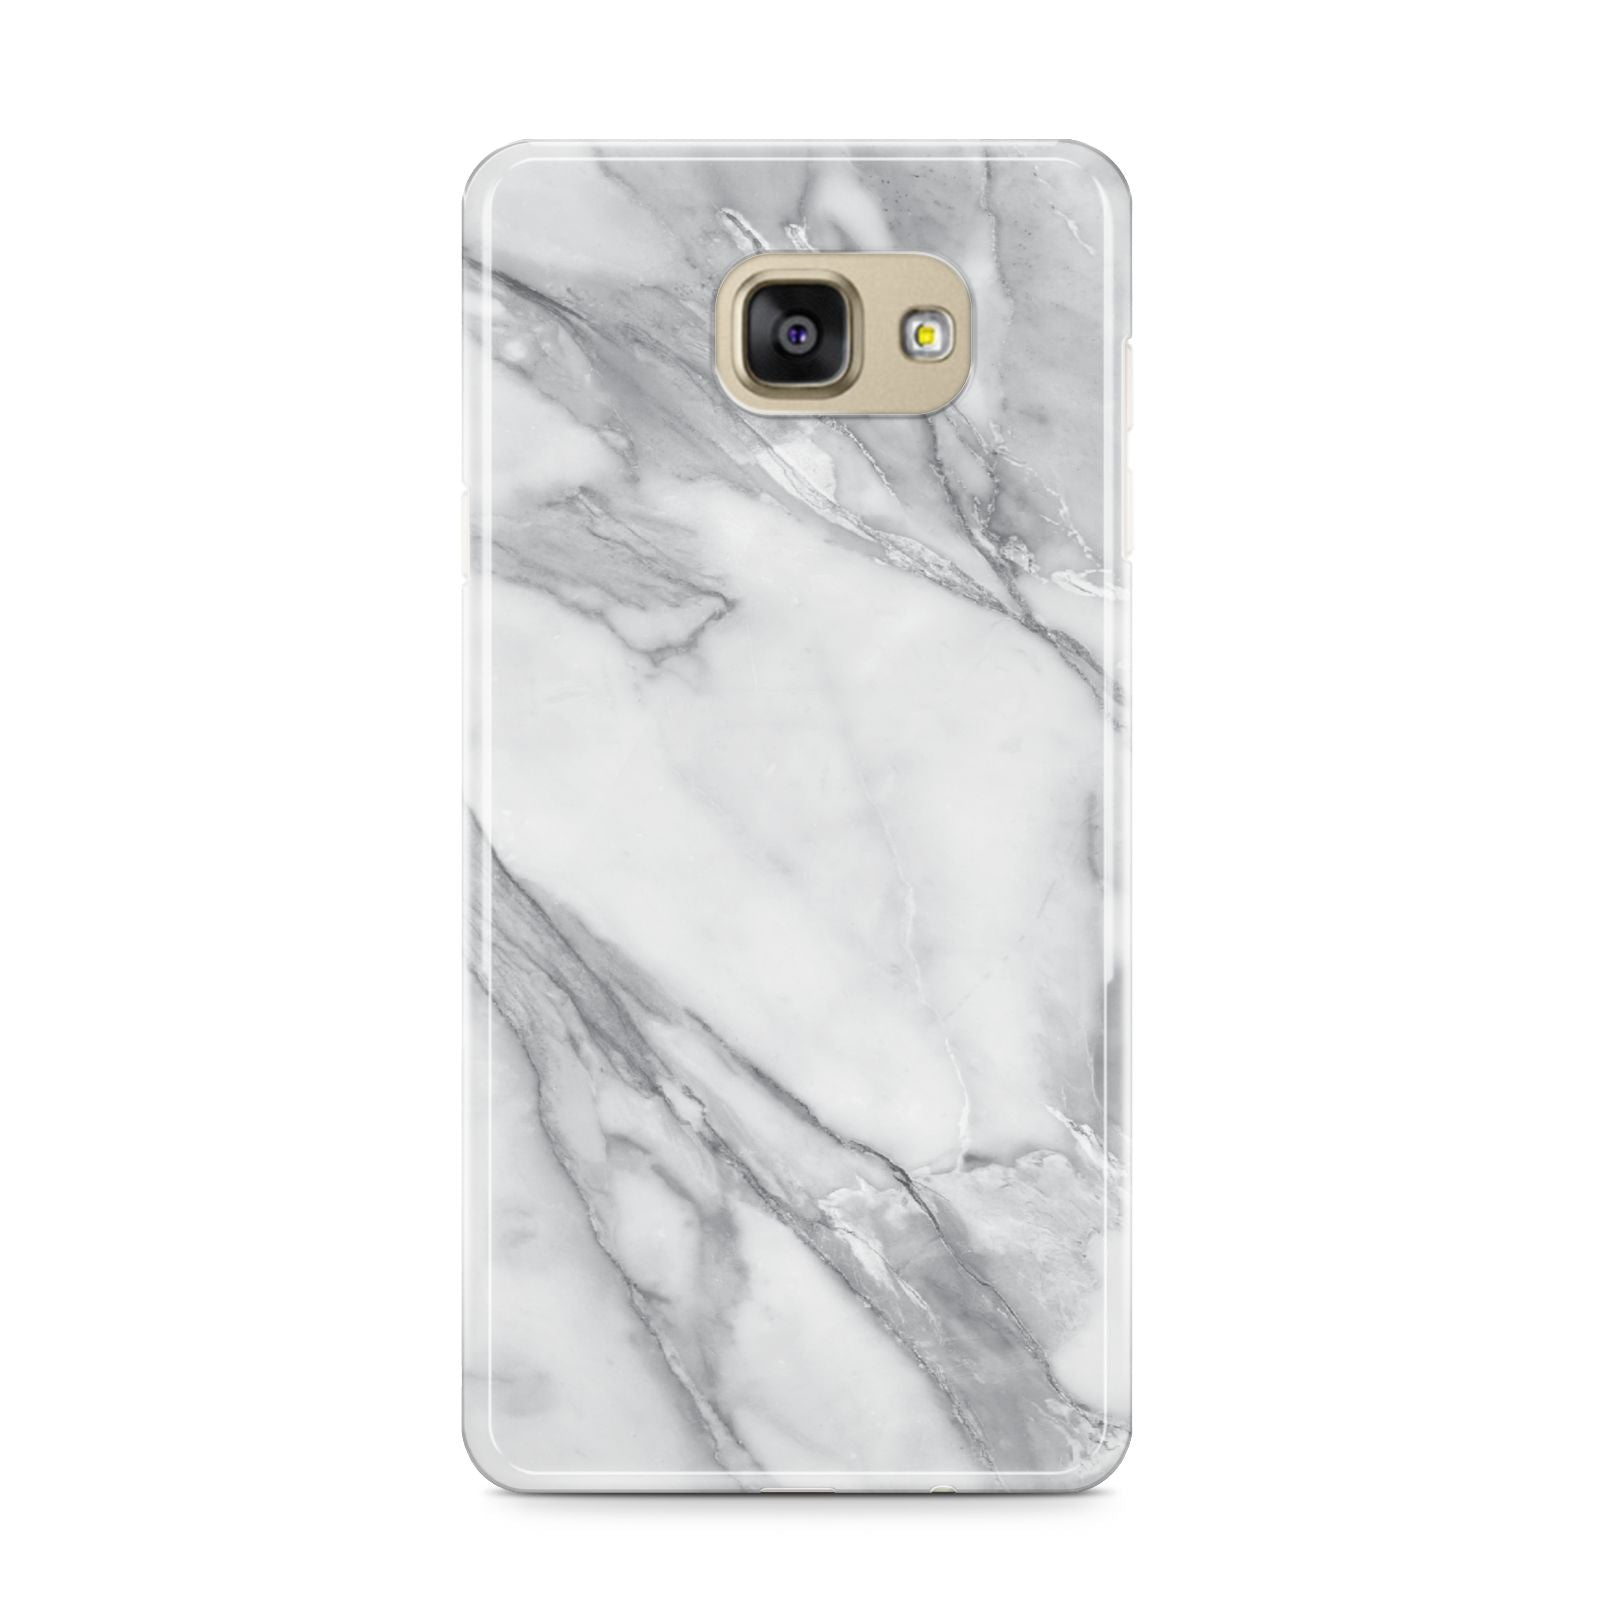 Faux Marble Effect White Grey Samsung Galaxy A9 2016 Case on gold phone